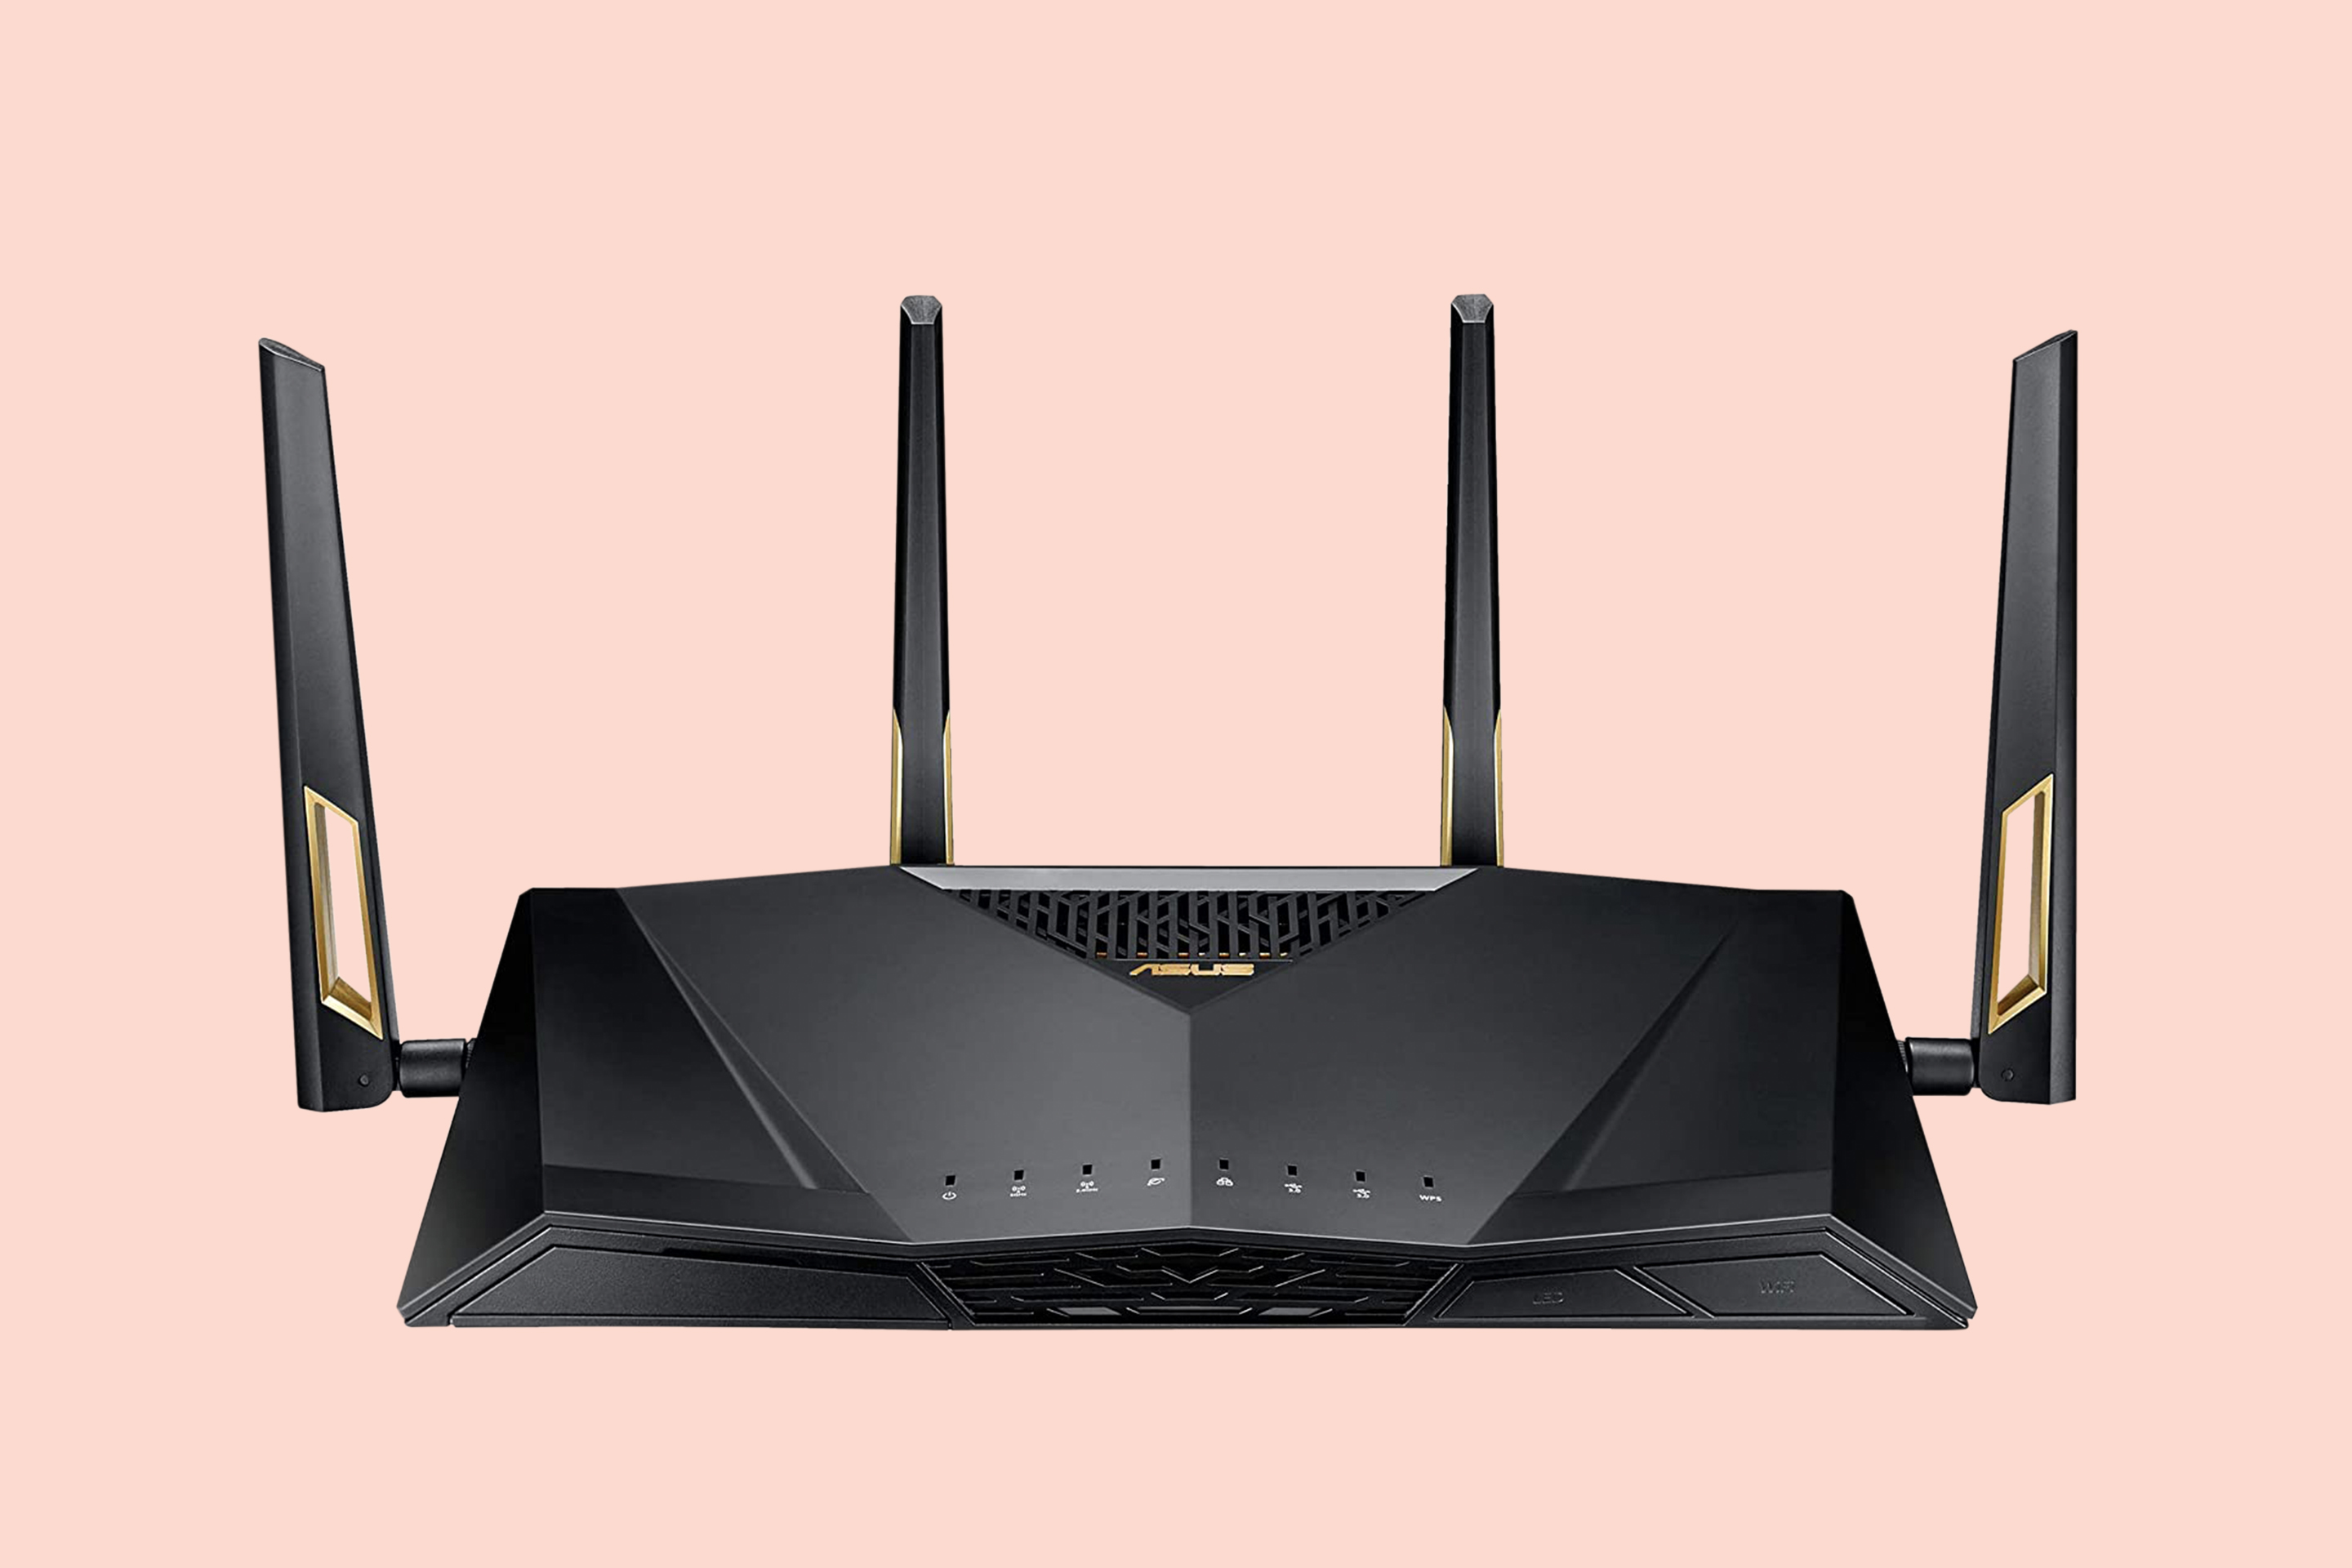 ASUS AX6000 WiFi 6 Gaming Router